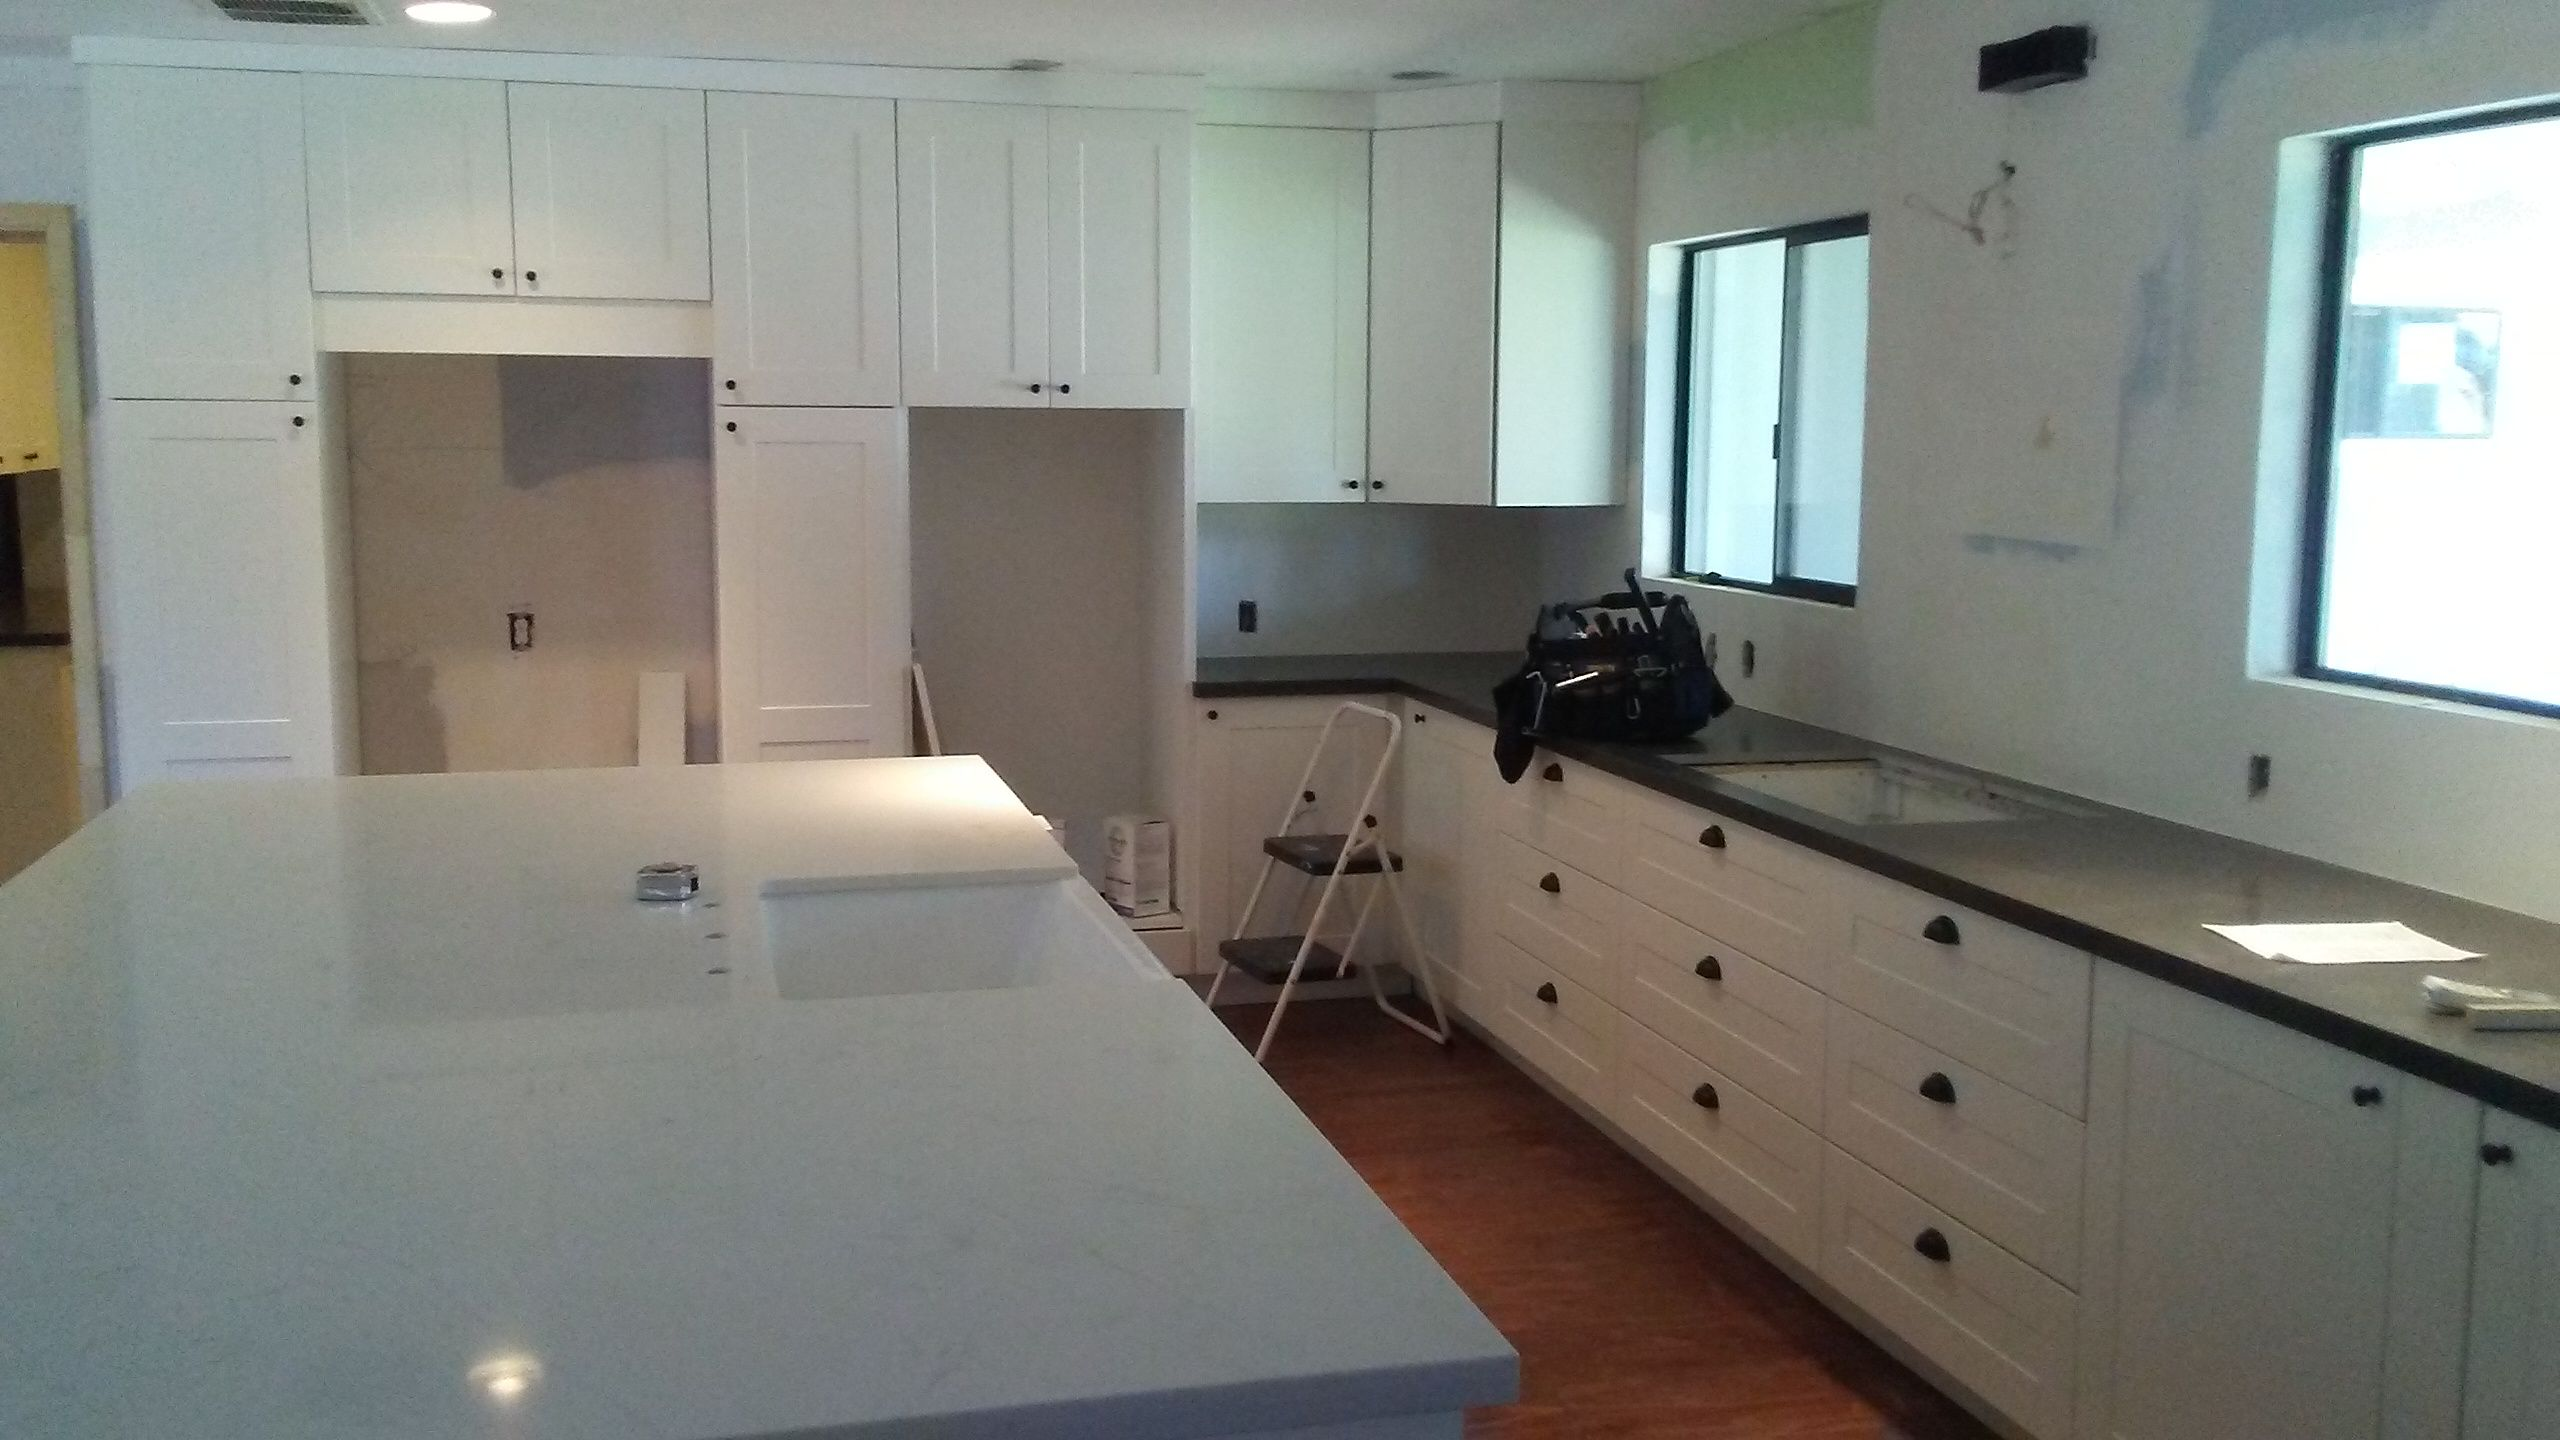 Another IKEA kitchen assembly by Phoenix Furniture Assembly. The ...